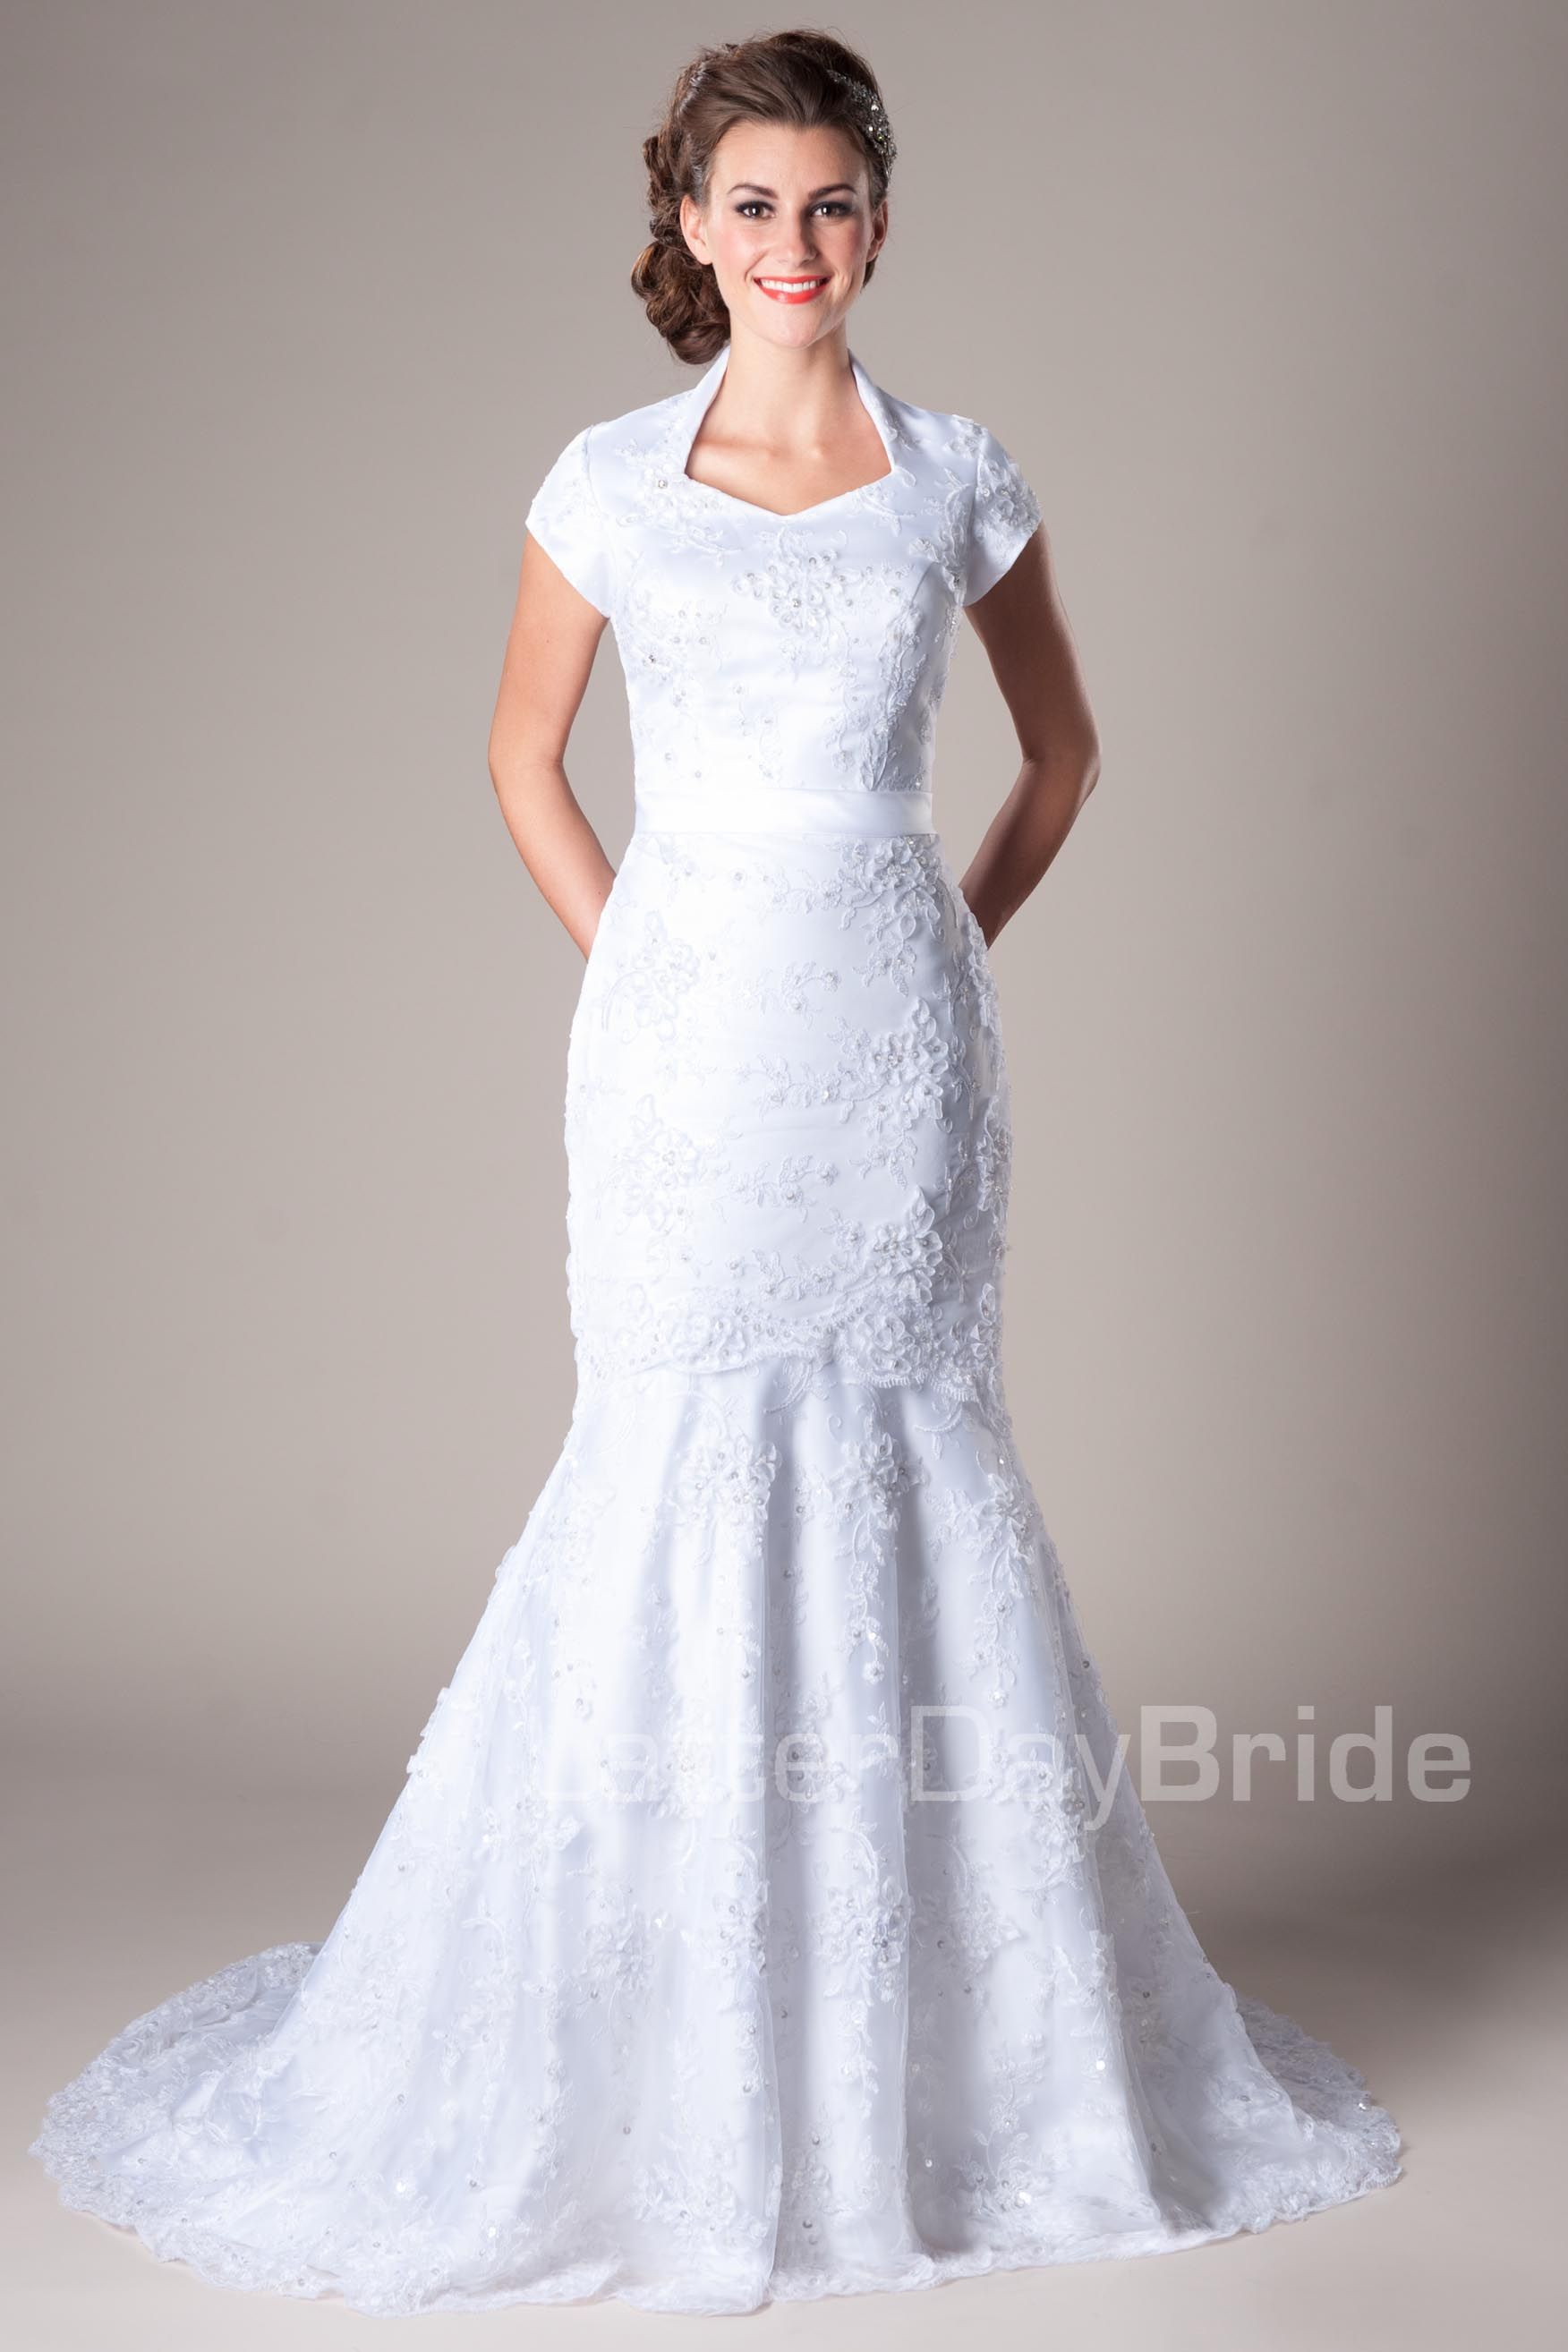 Really Pretty Modest Floral Lace Mermaid Wedding Dress Queen Anne Neckline